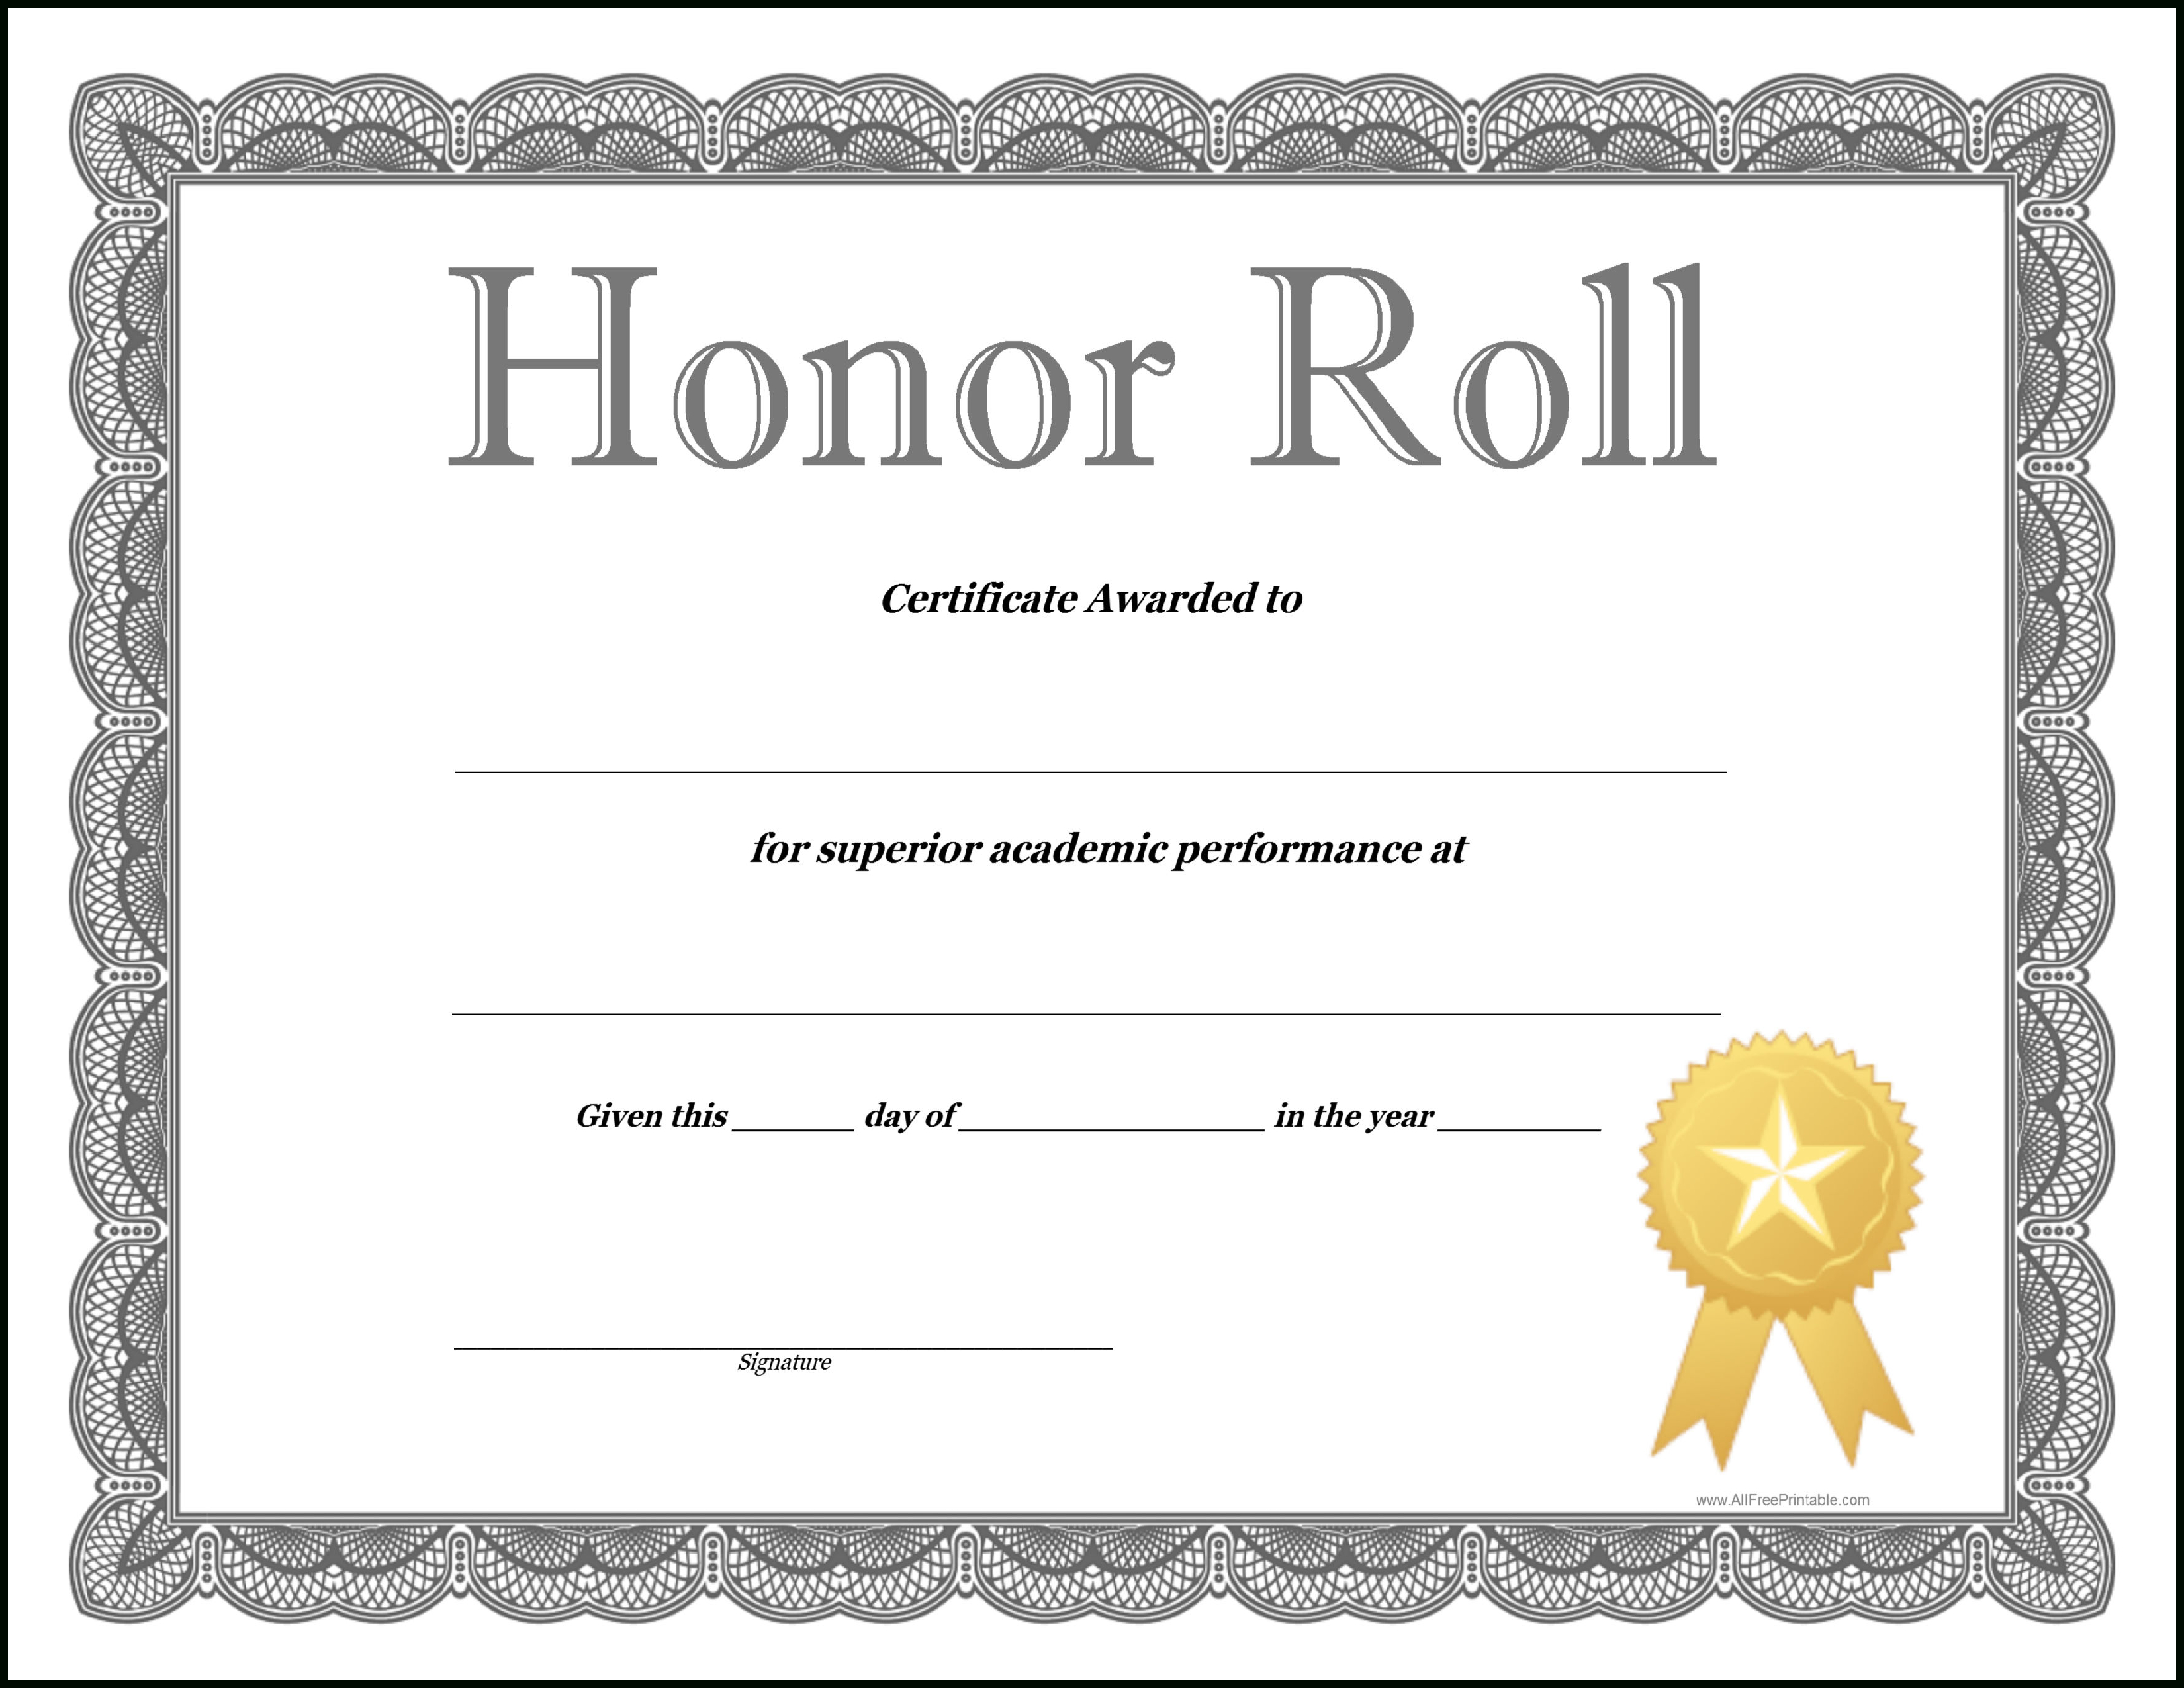 Honor Roll Certificate Template  How To Craft A Professional Intended For Professional Award Certificate Template